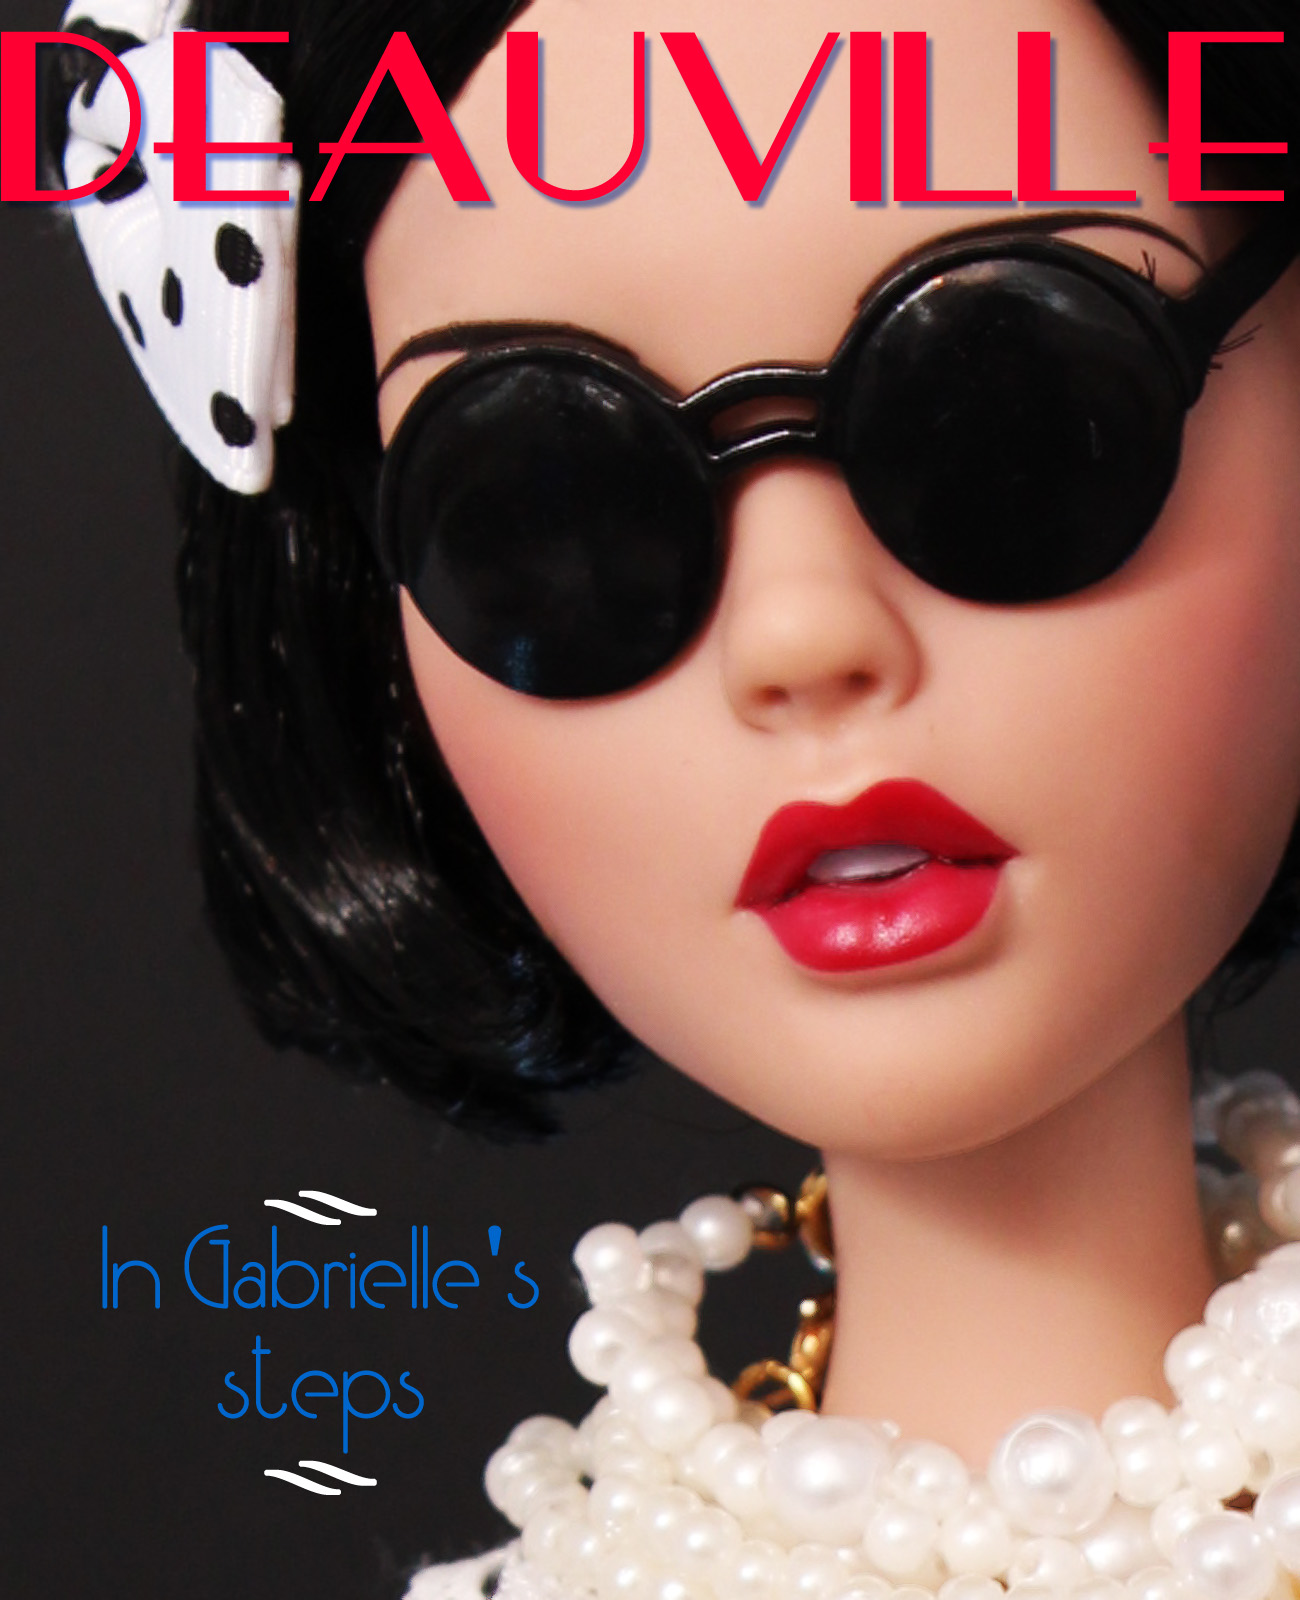 coverdeauvilleUK